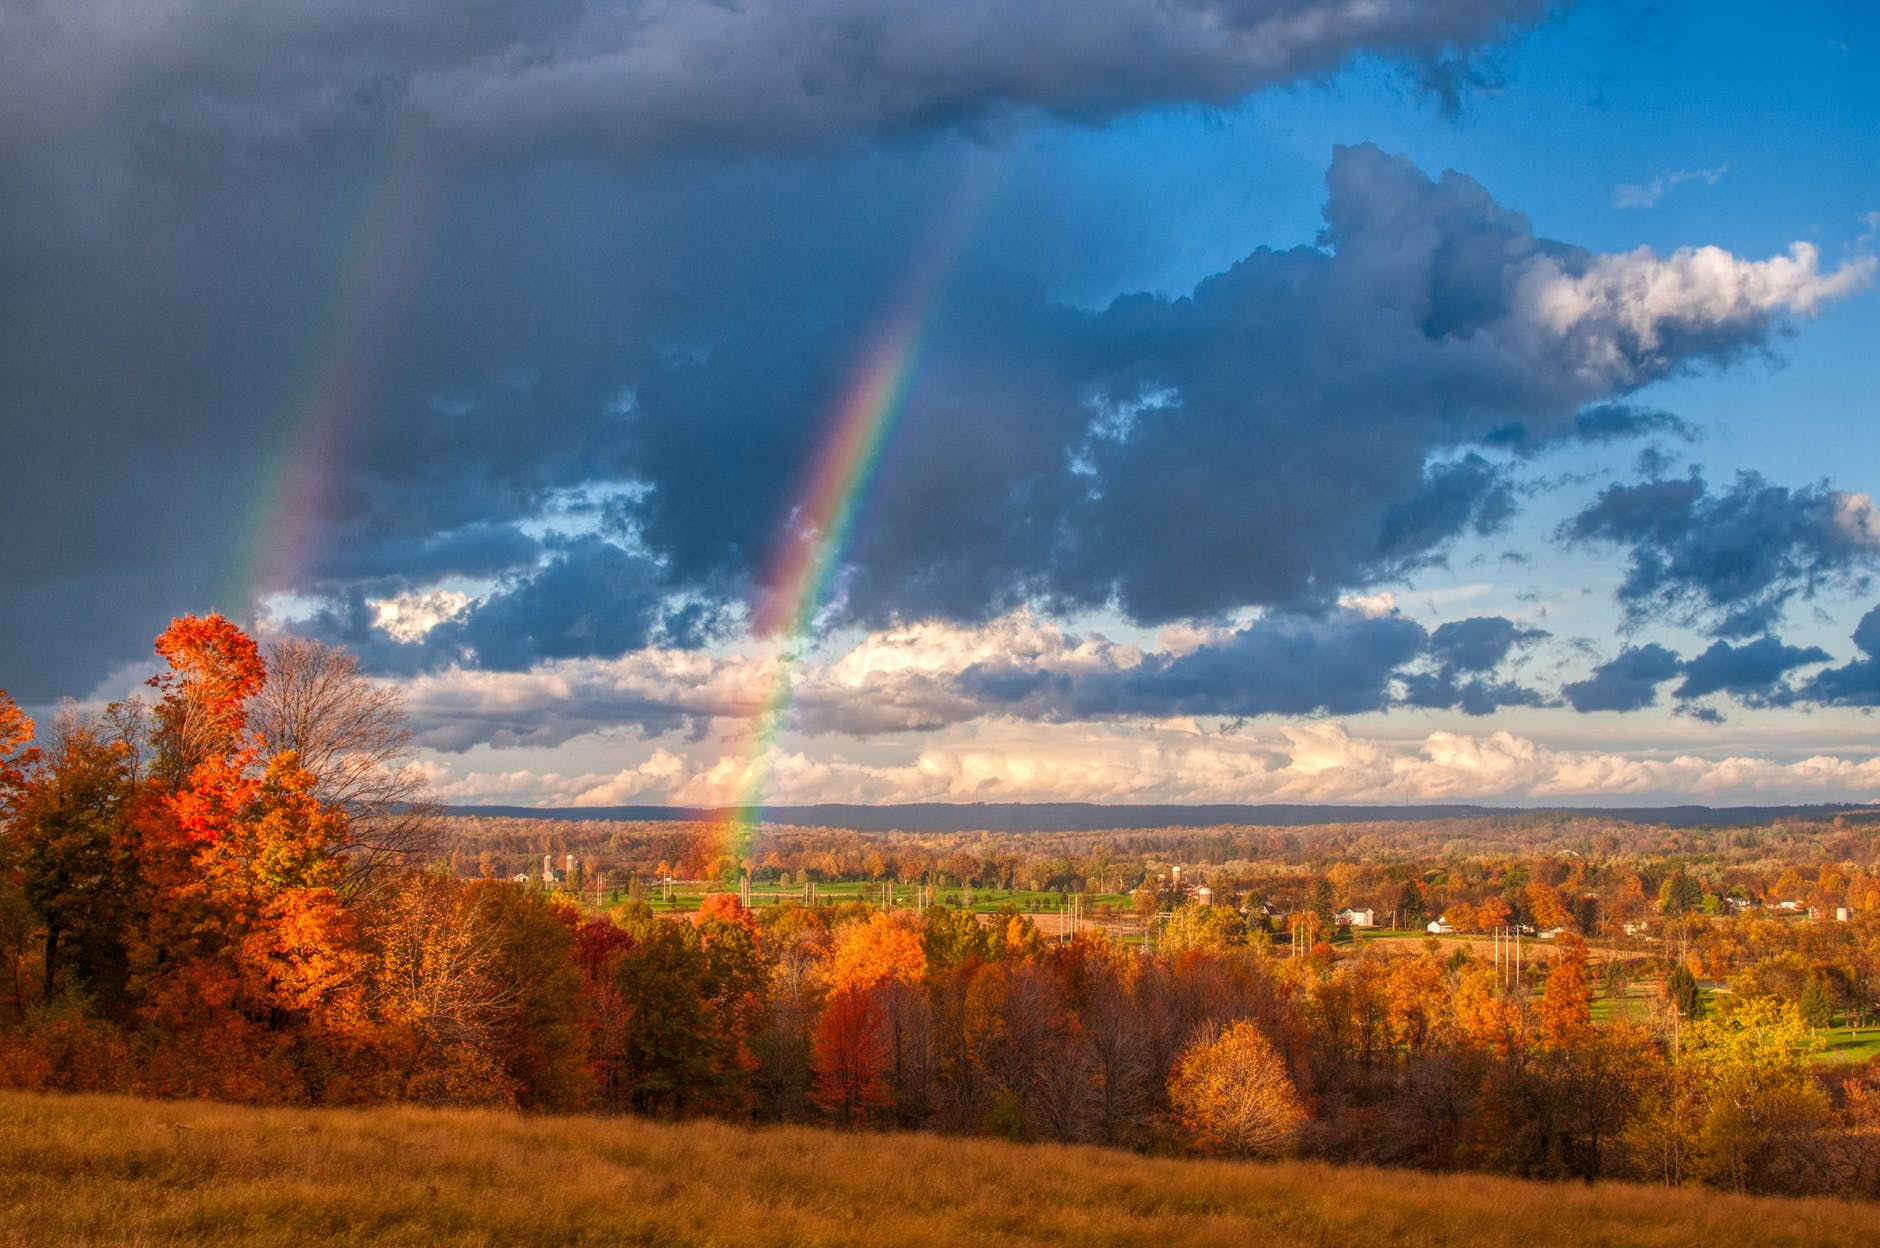 scenic view of sky with rainbow